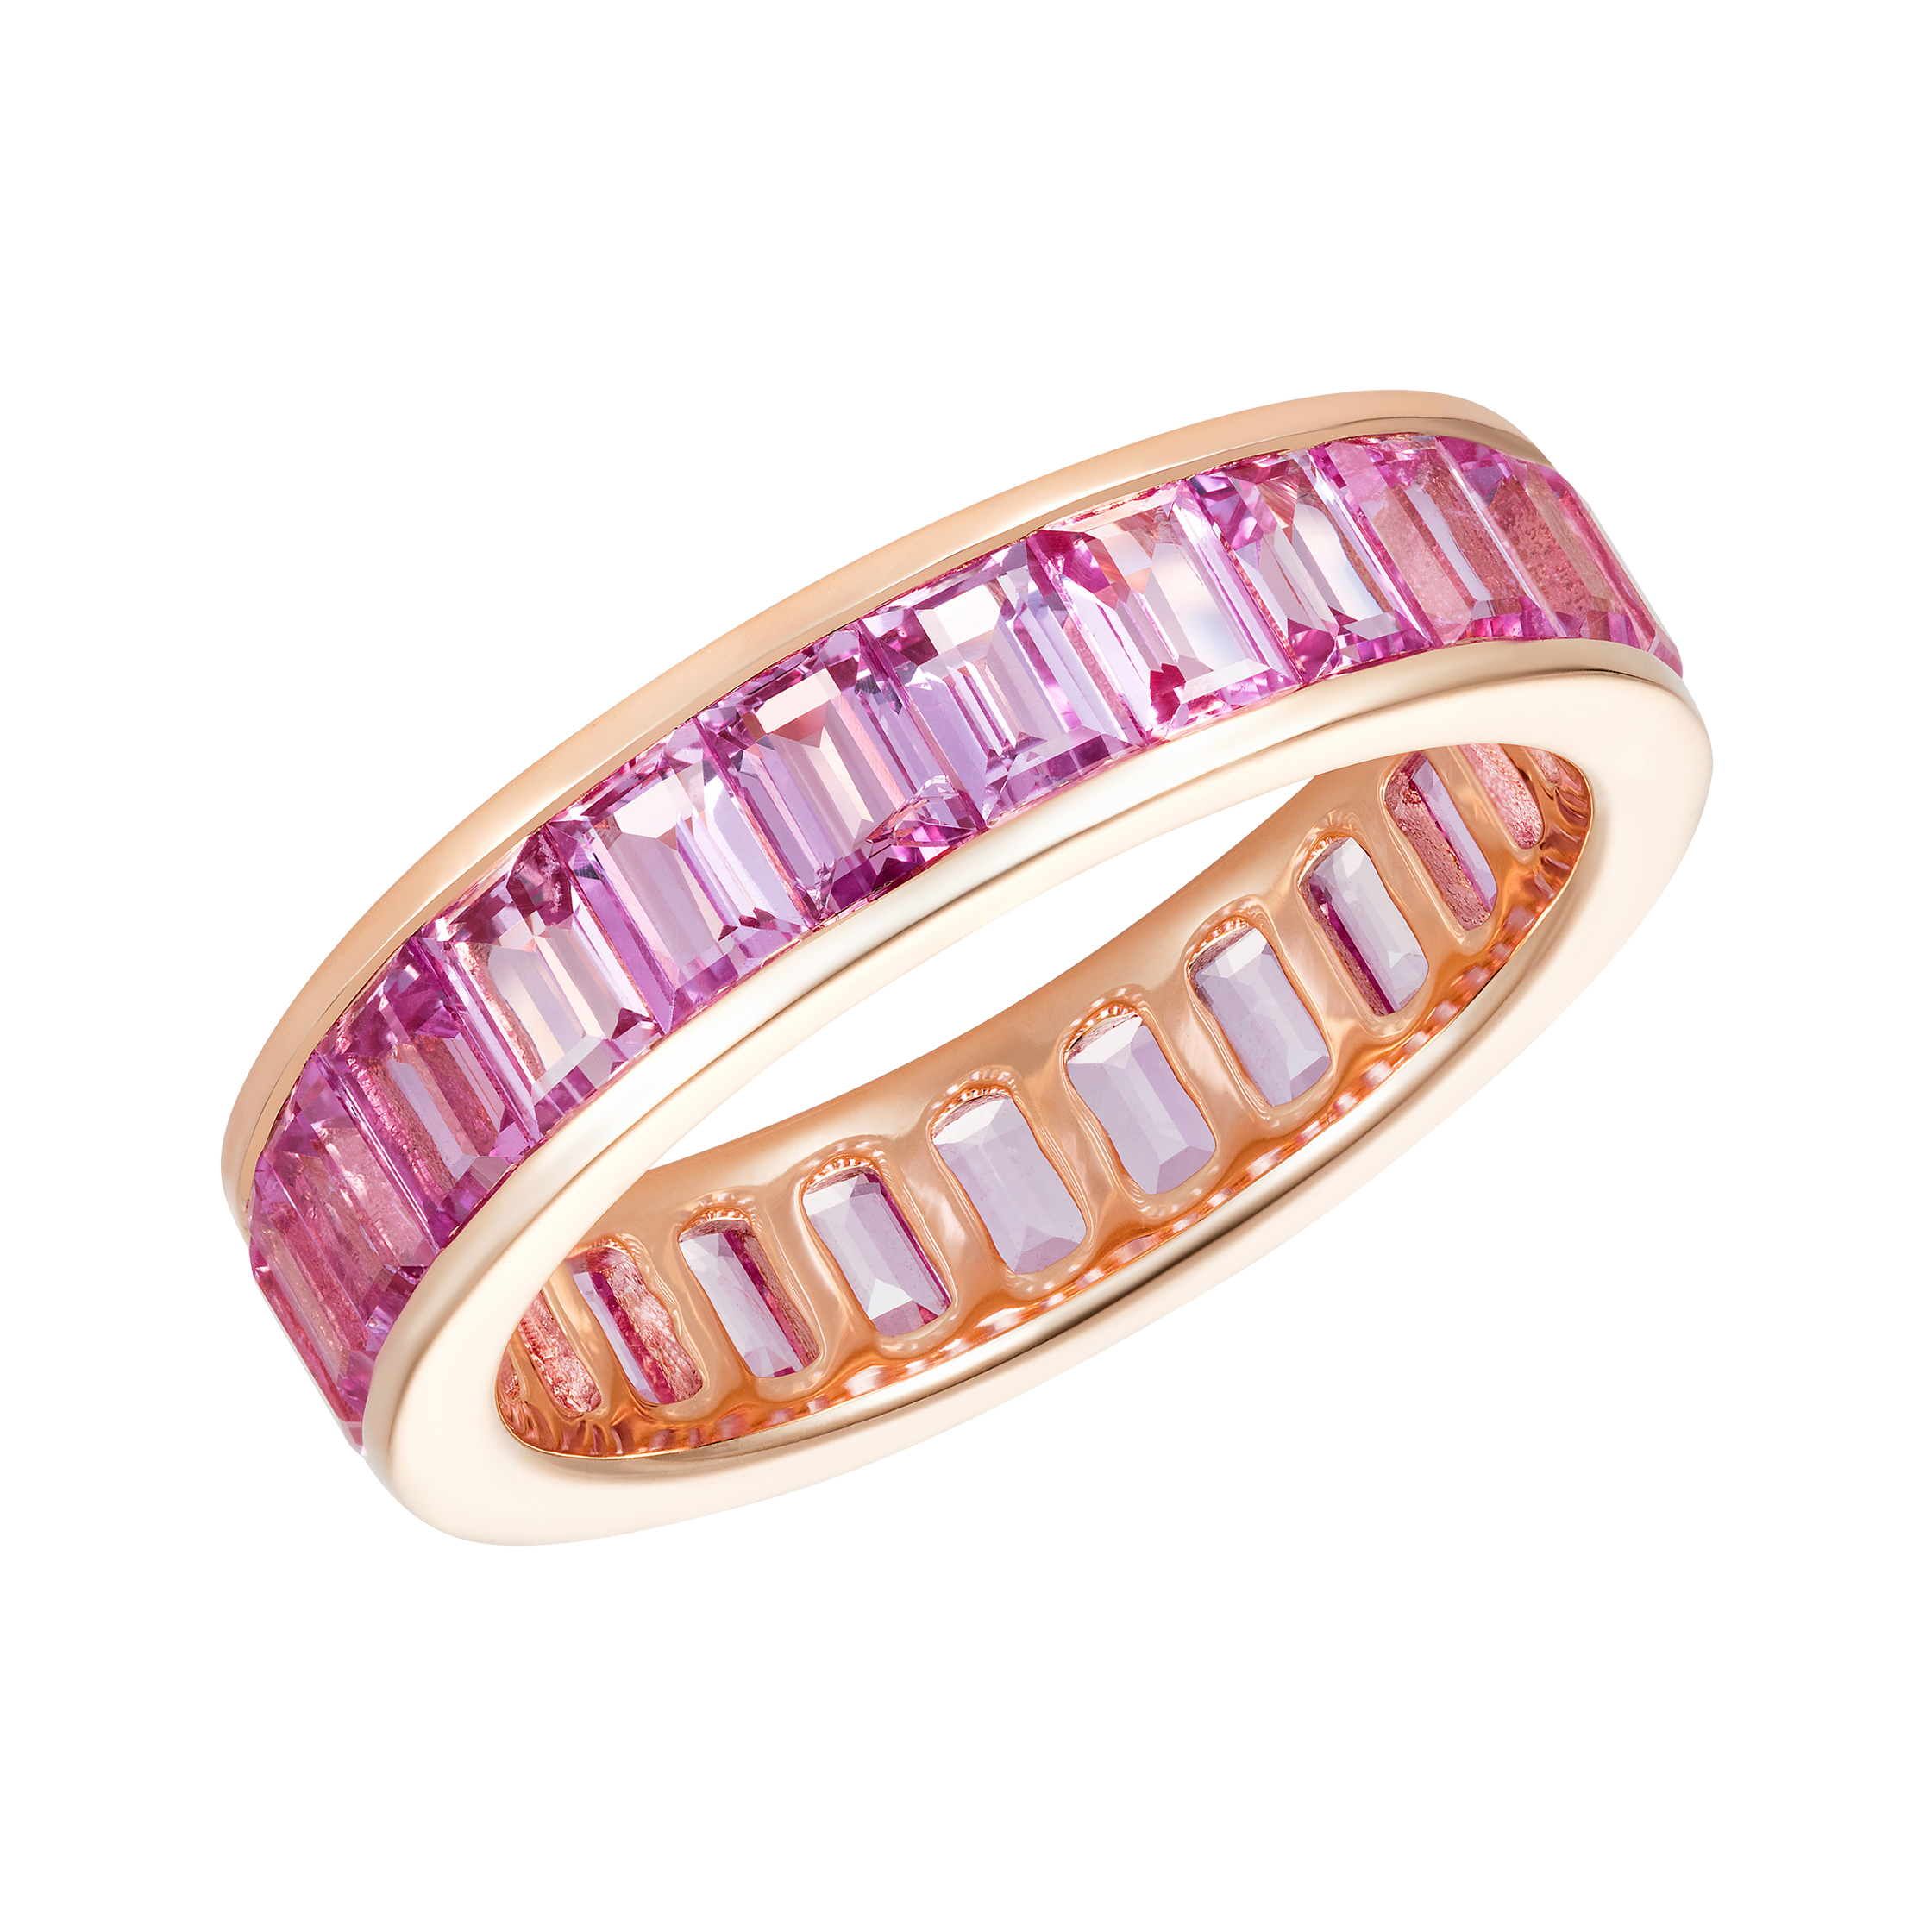 realreal eternity bands pink products hearts rings enlarged chrome jewelry diamond the band